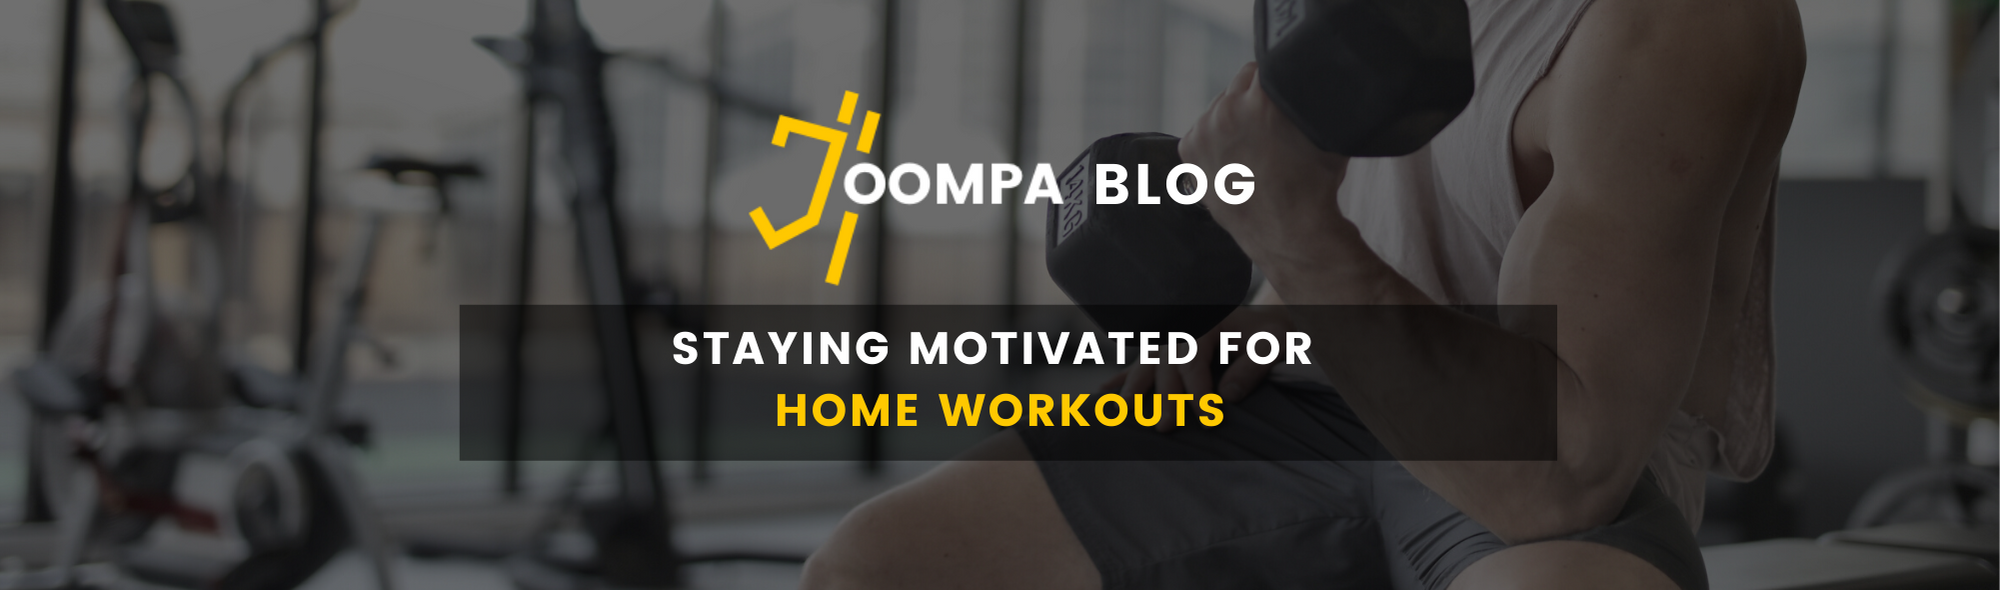 Staying Motivated for Home Workouts